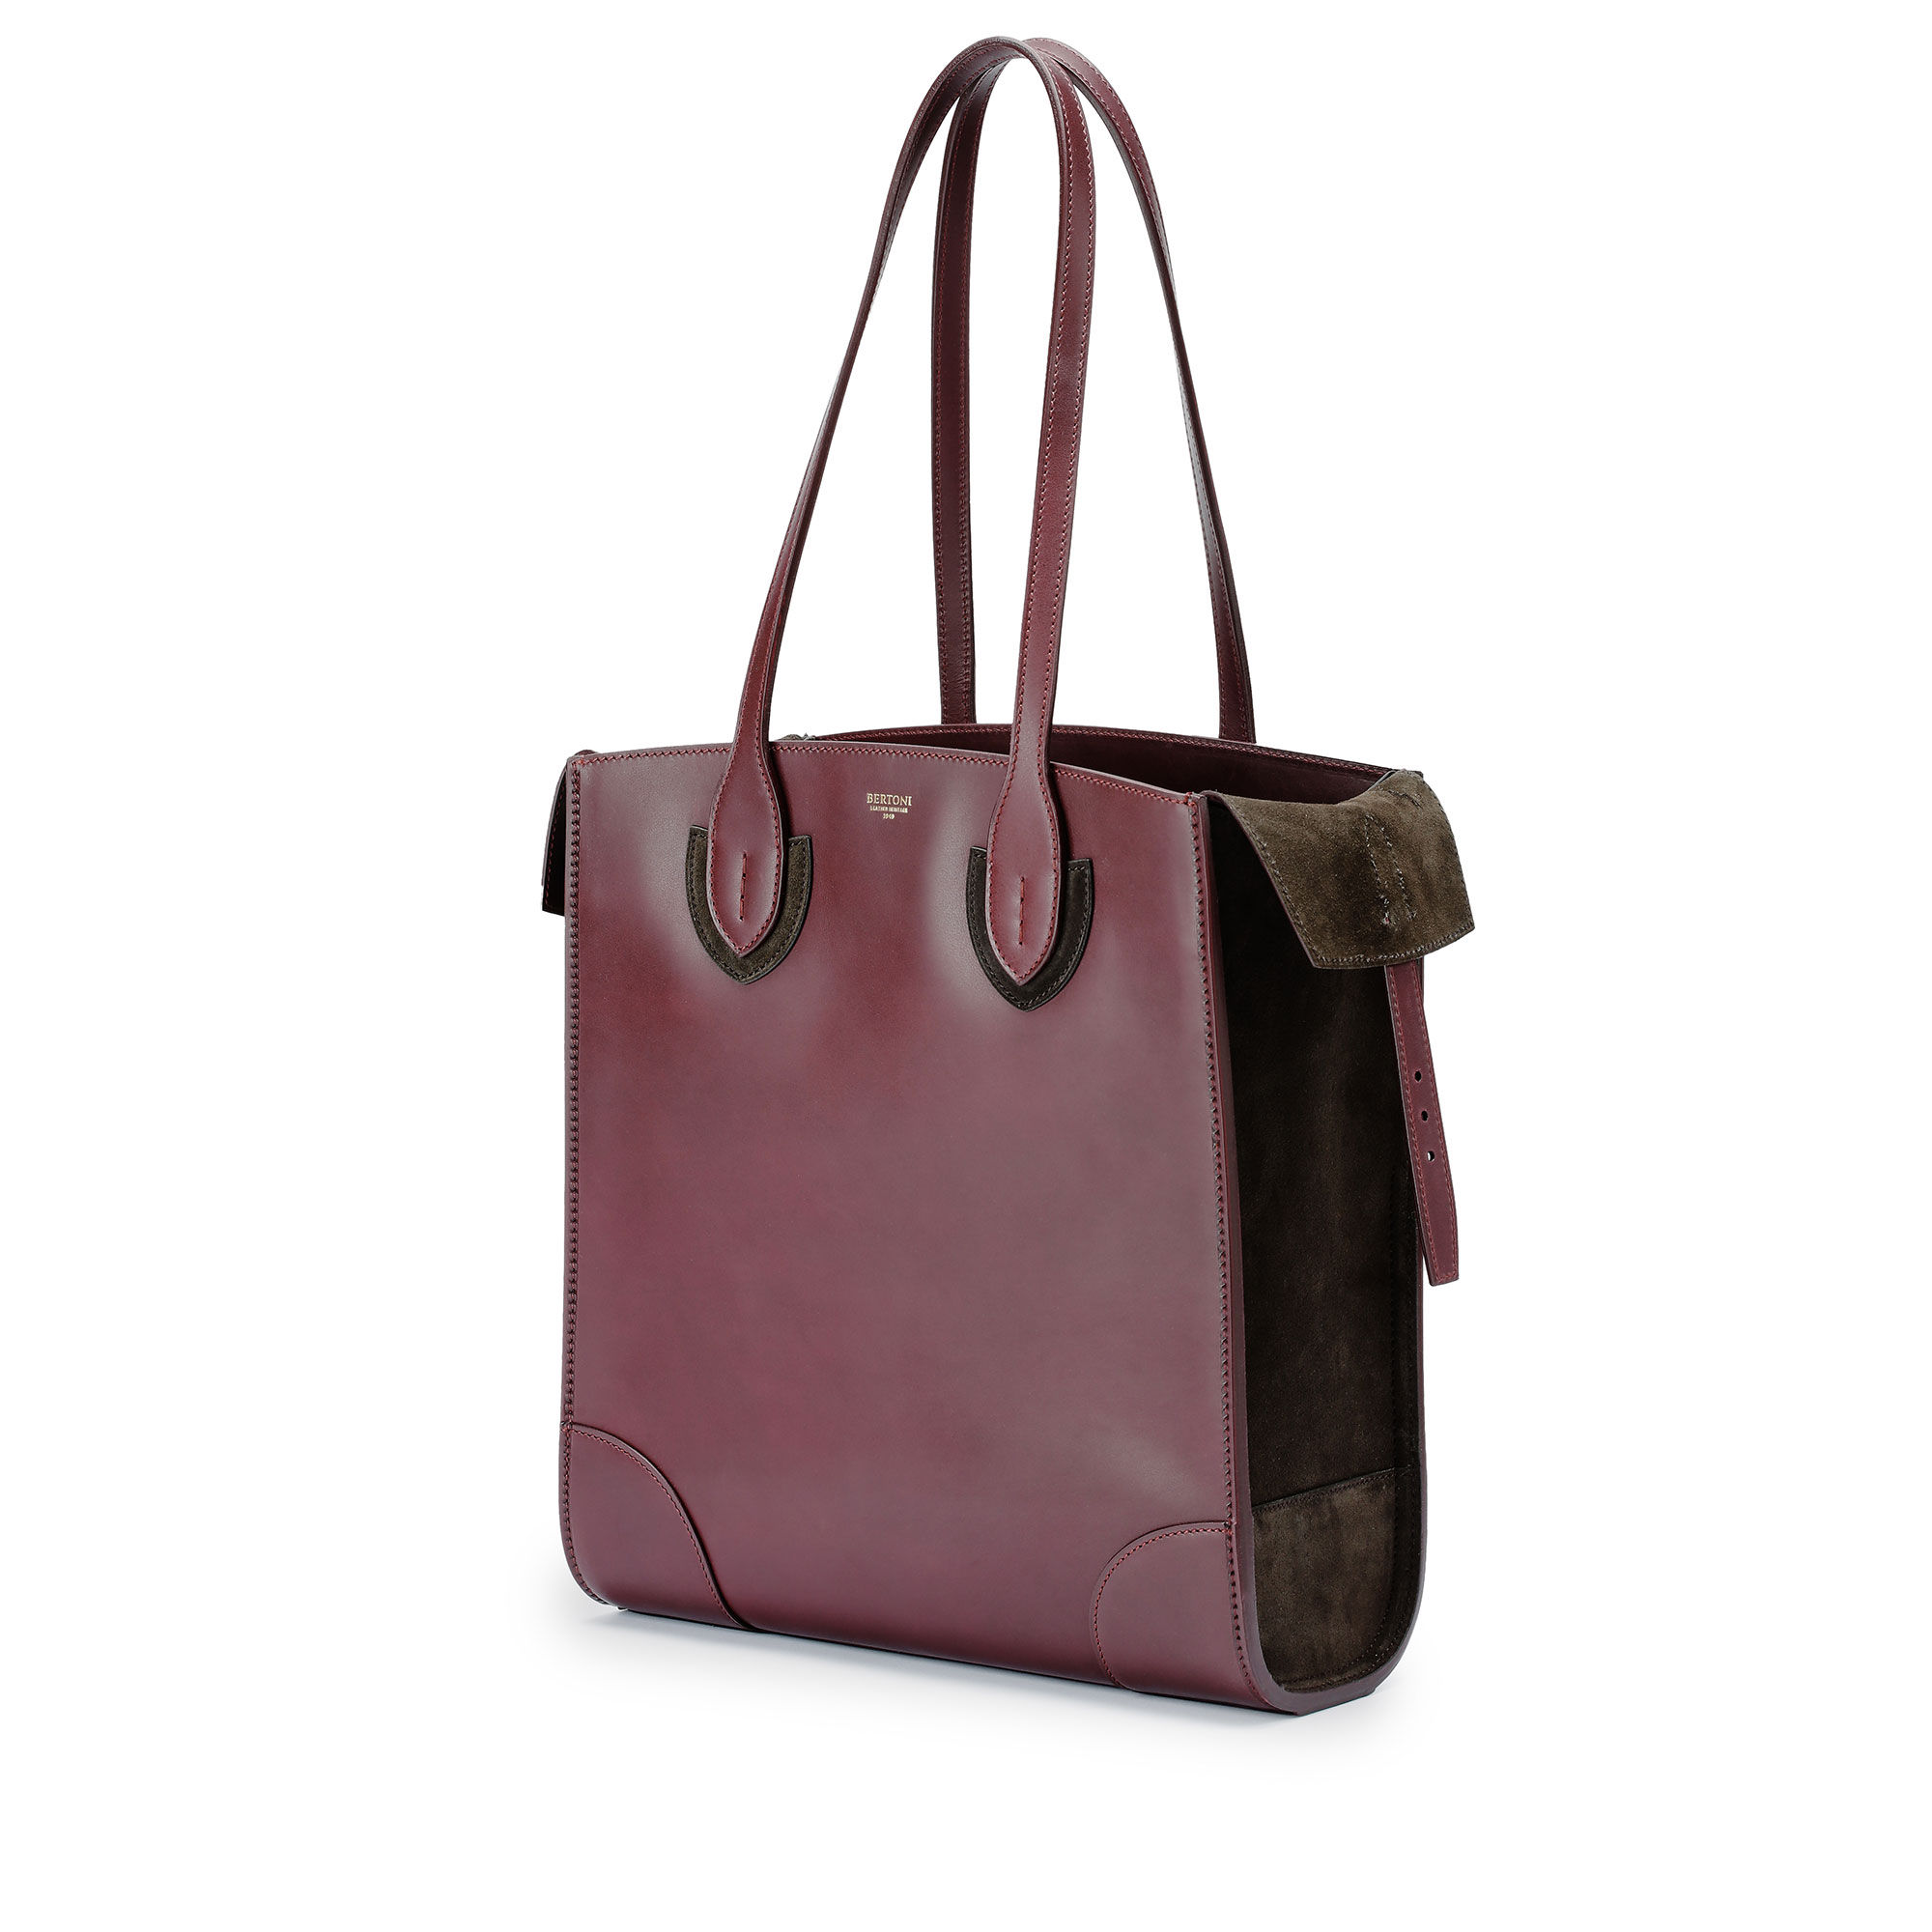 Darcy-Tote-bordeaux-french-calf-bag-Bertoni-1949_02